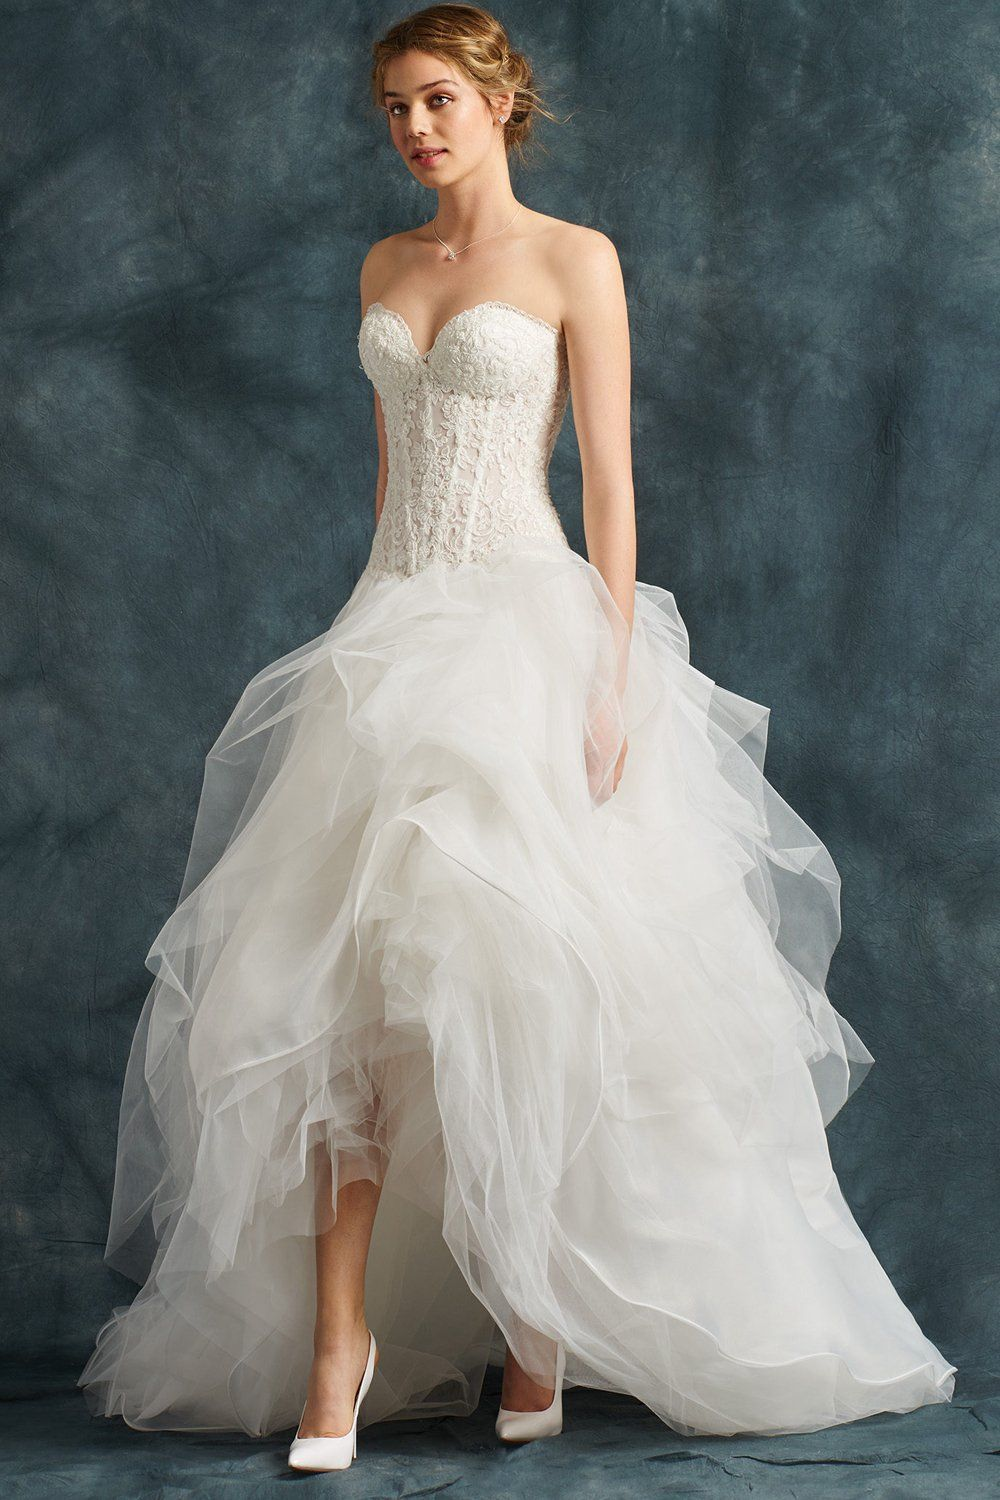 Highlow sweetheart neckline layers wedding dresses with a